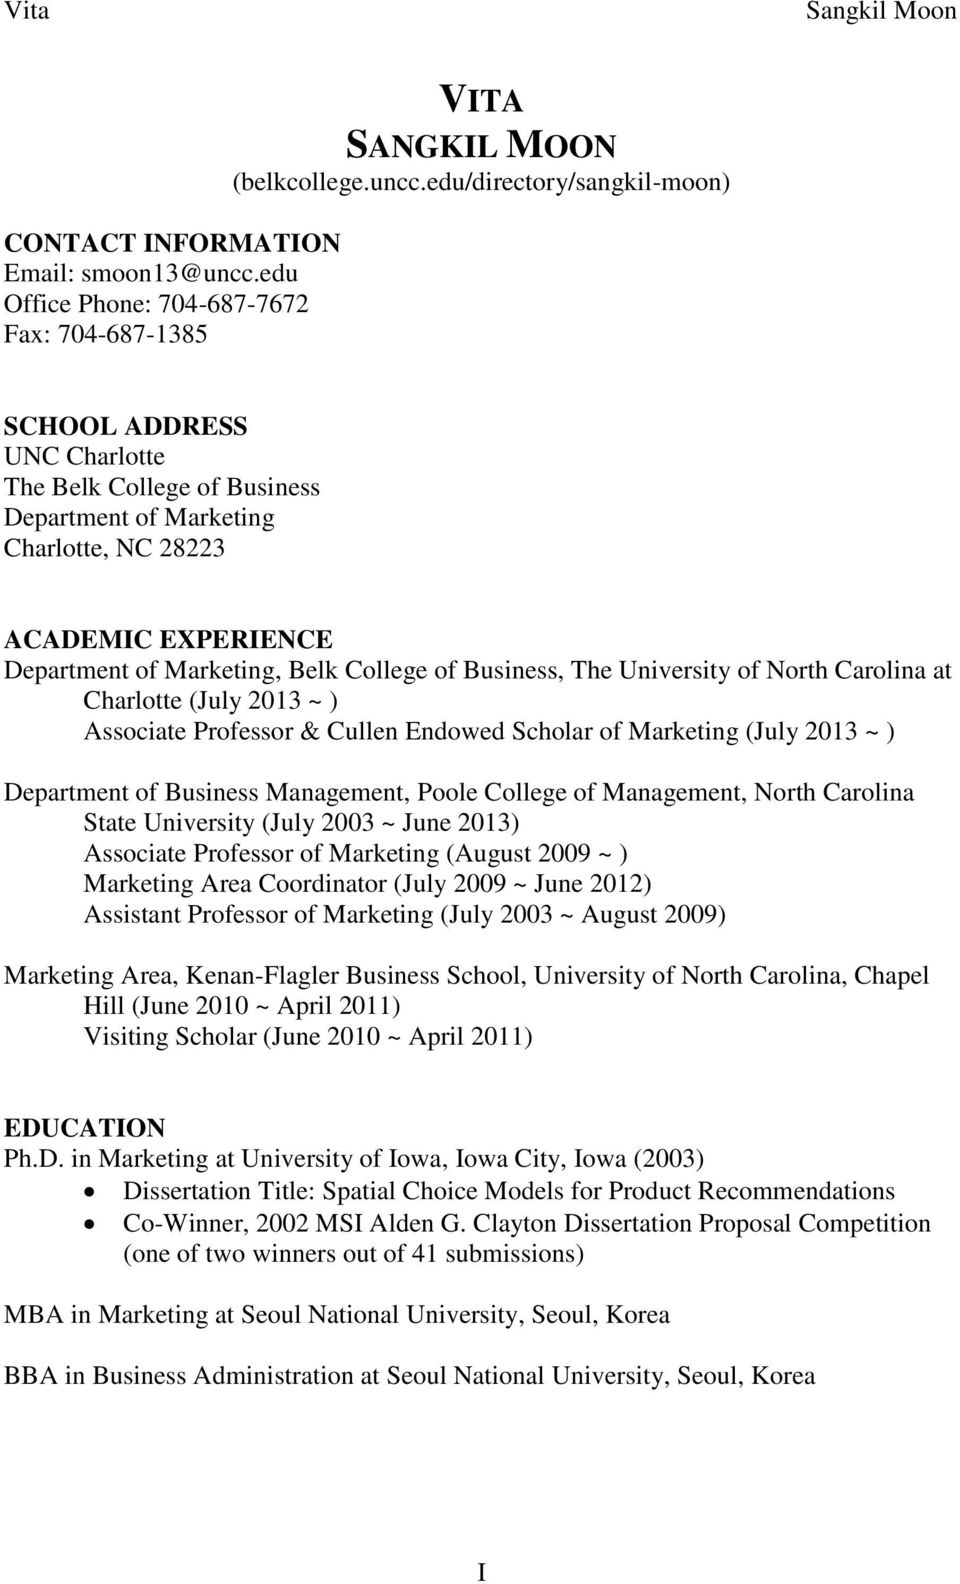 edu/directory/sangkil-moon) SCHOOL ADDRESS UNC Charlotte The Belk College of Business Department of Marketing Charlotte, NC 28223 ACADEMIC EXPERIENCE Department of Marketing, Belk College of